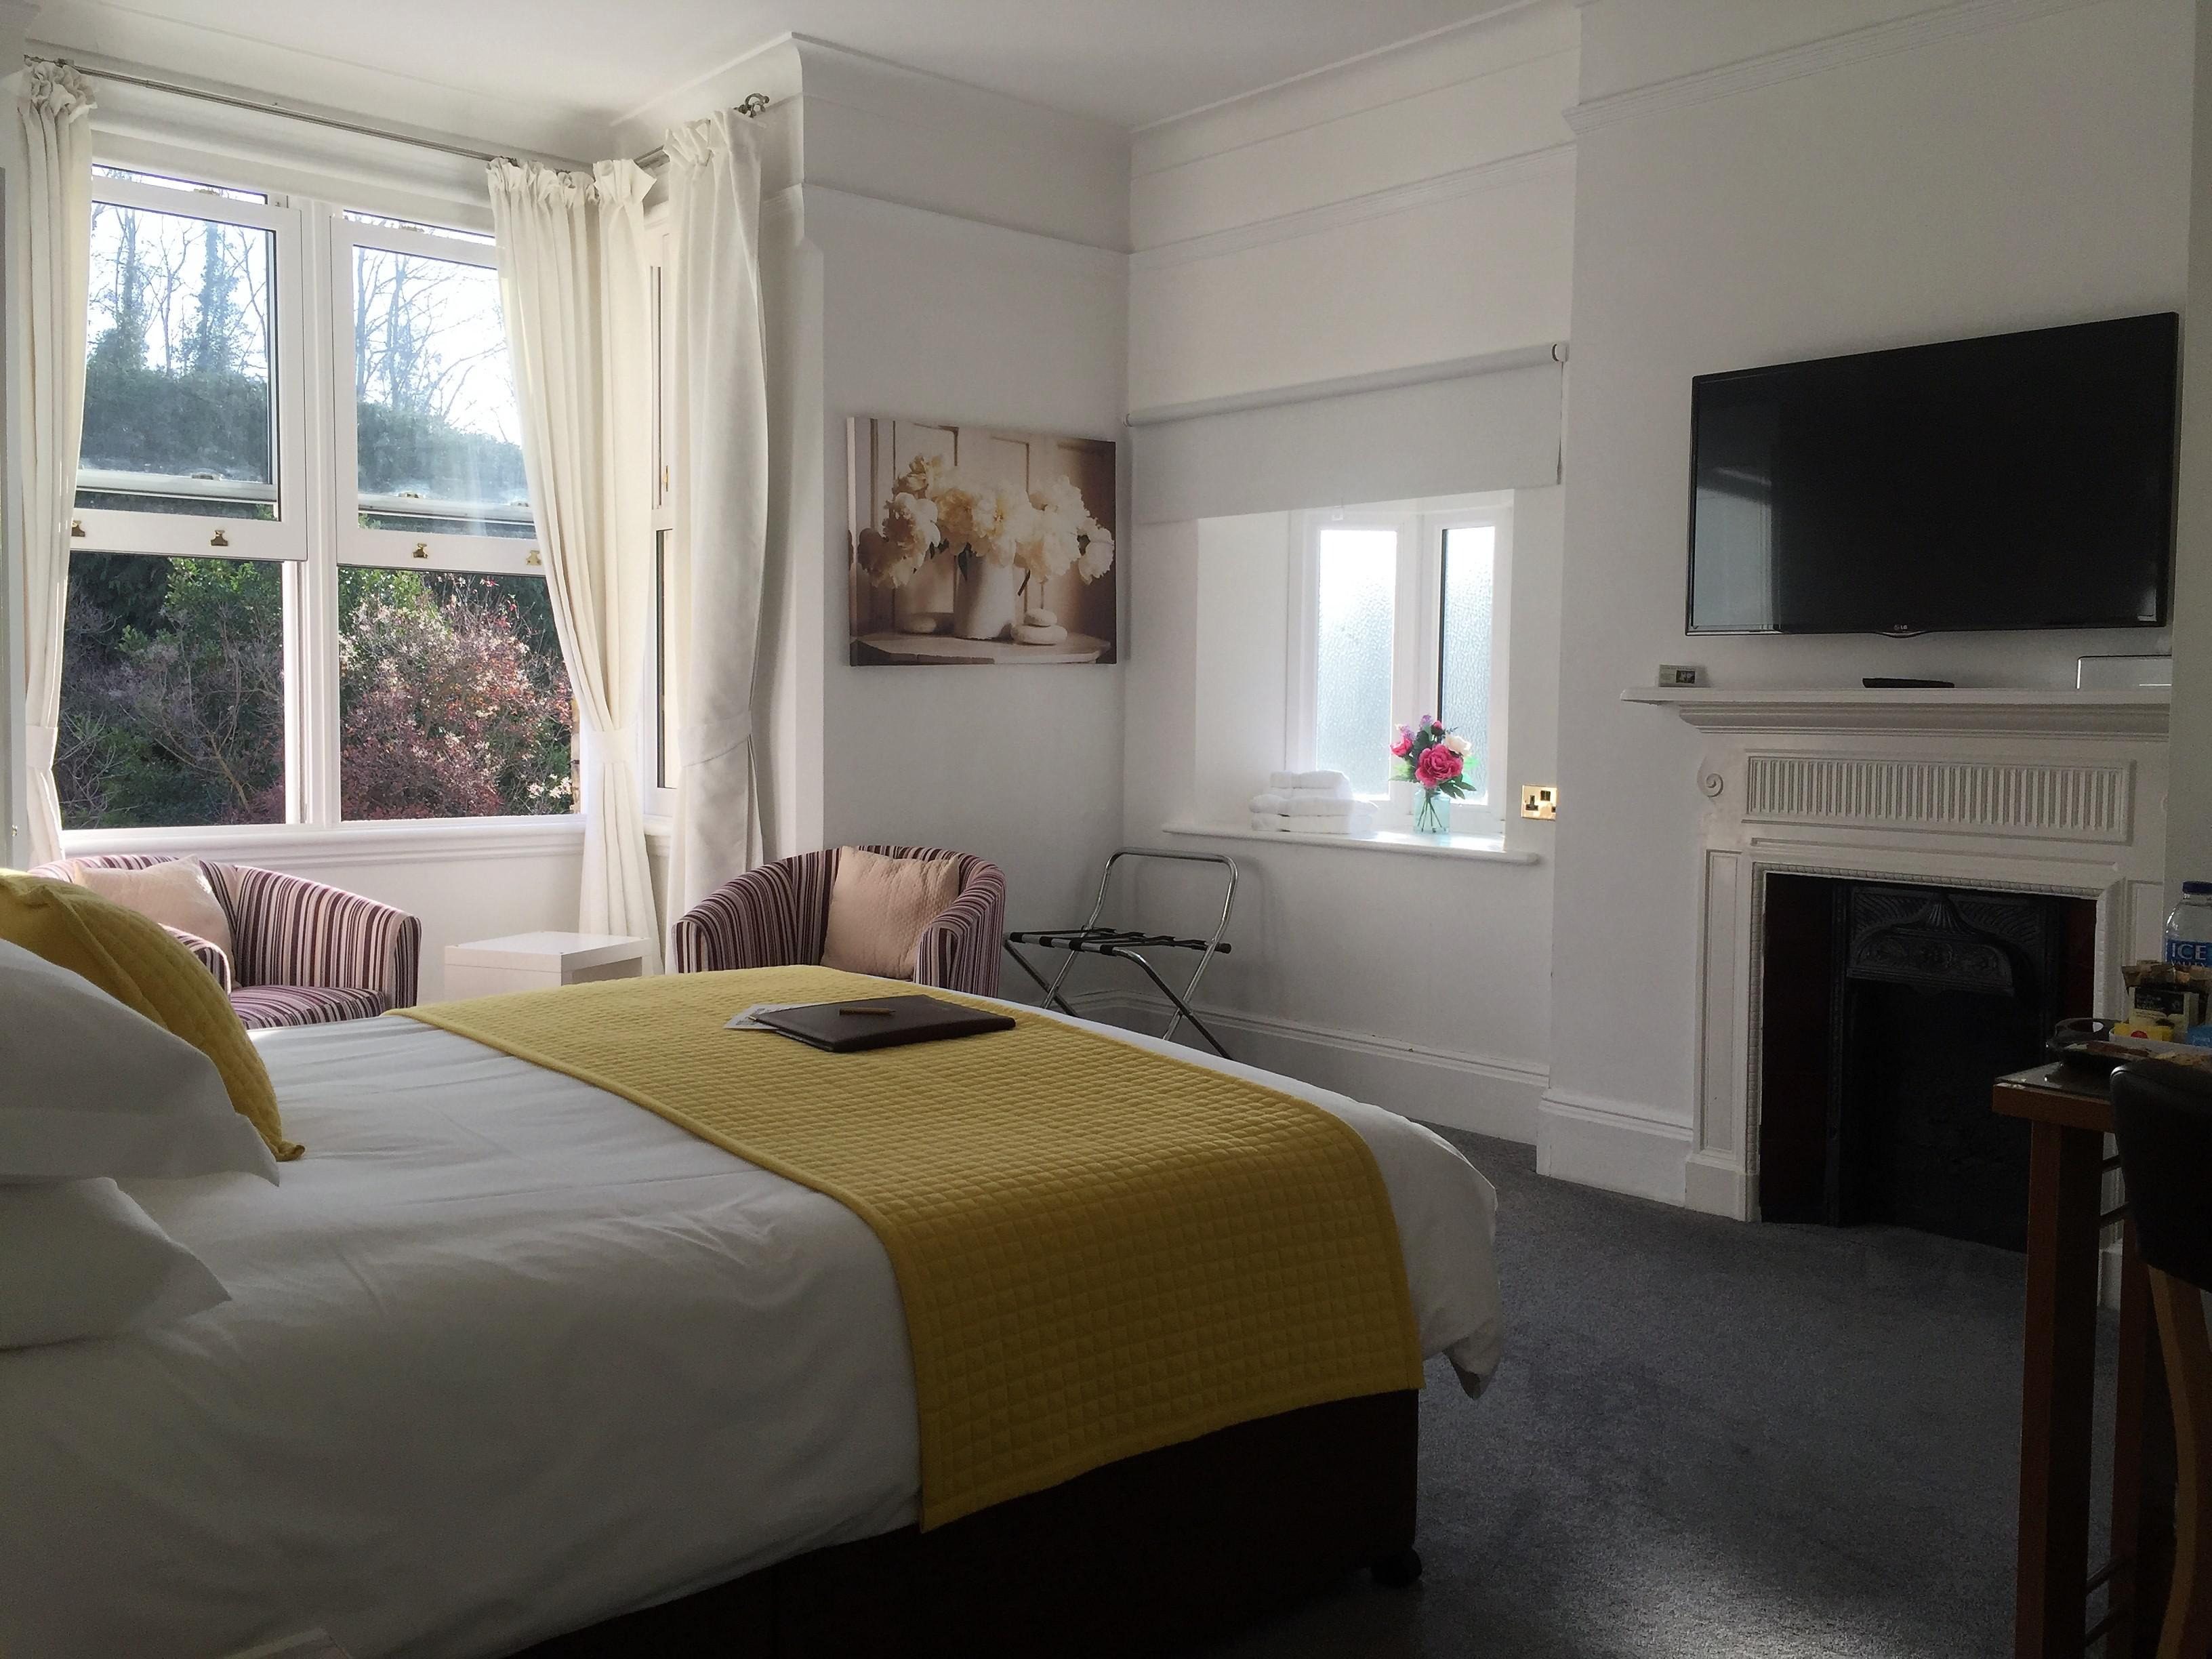 Double room-Ensuite-Room 1 - King-size